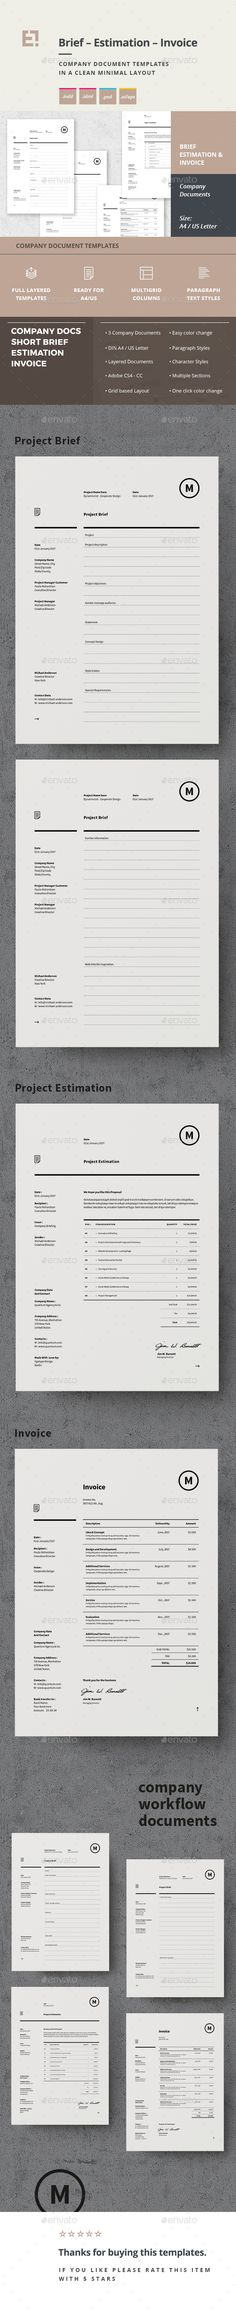 Proposal 22, Http wwwjennisonbeautysupply/ and Us - purchase proposal templates